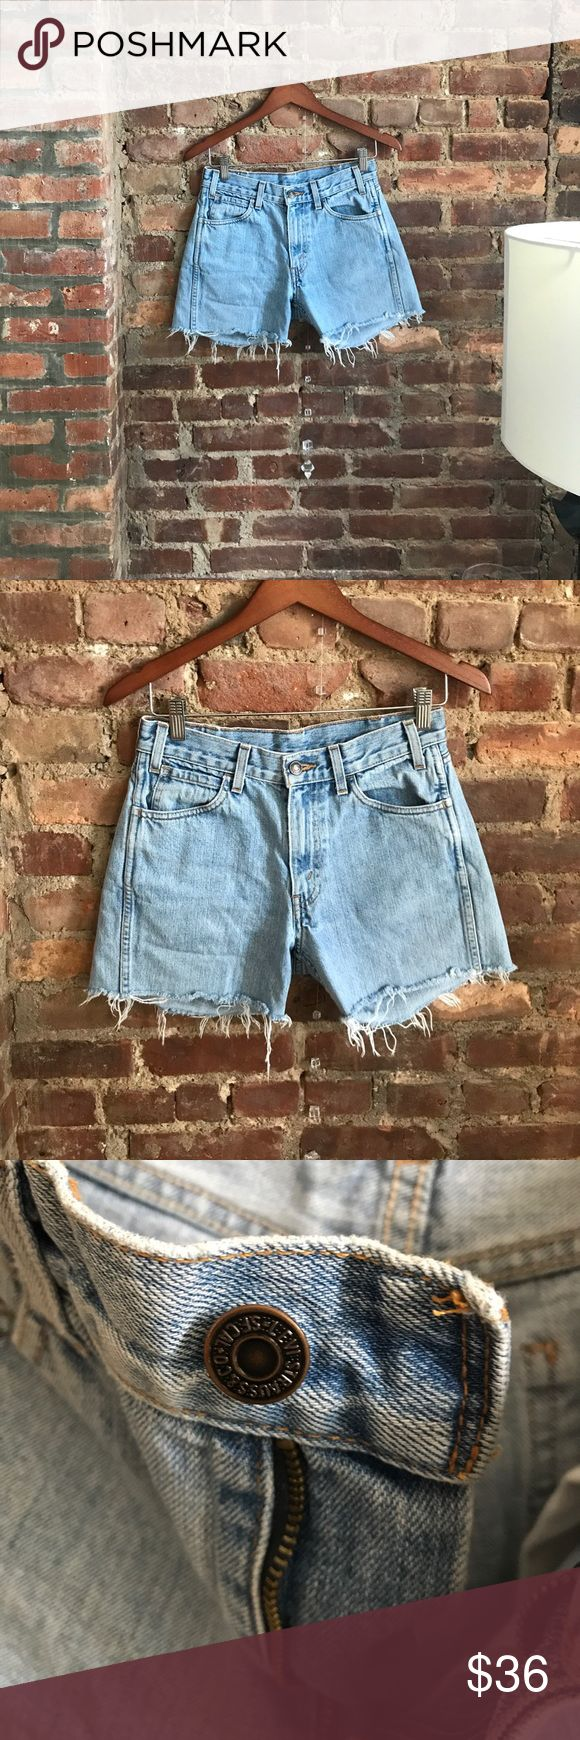 """Vintage Levi's 506 orange tab cutoff denim shorts Waist 28"""" / Inseam 3.5"""" / Outseam 13"""". Slightly loose relaxed fit on me (My natural waist measures 26""""). Great pre owned condition. Made in USA Levi's Shorts Jean Shorts"""